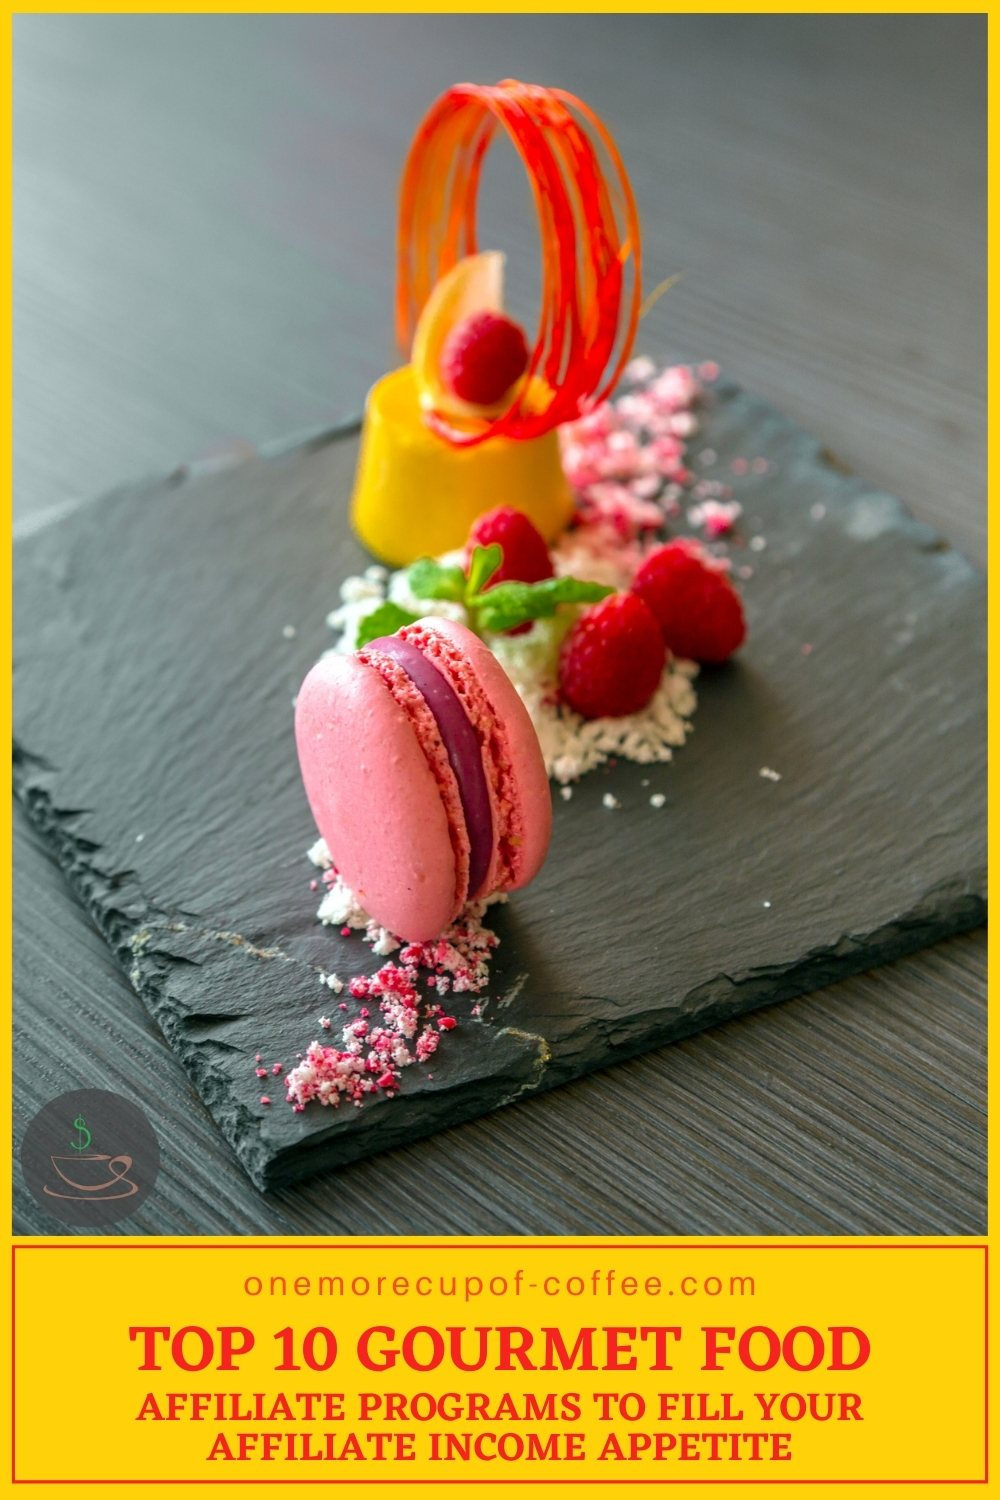 beautifully plated dessert dish, with text at the bottom on yellow background